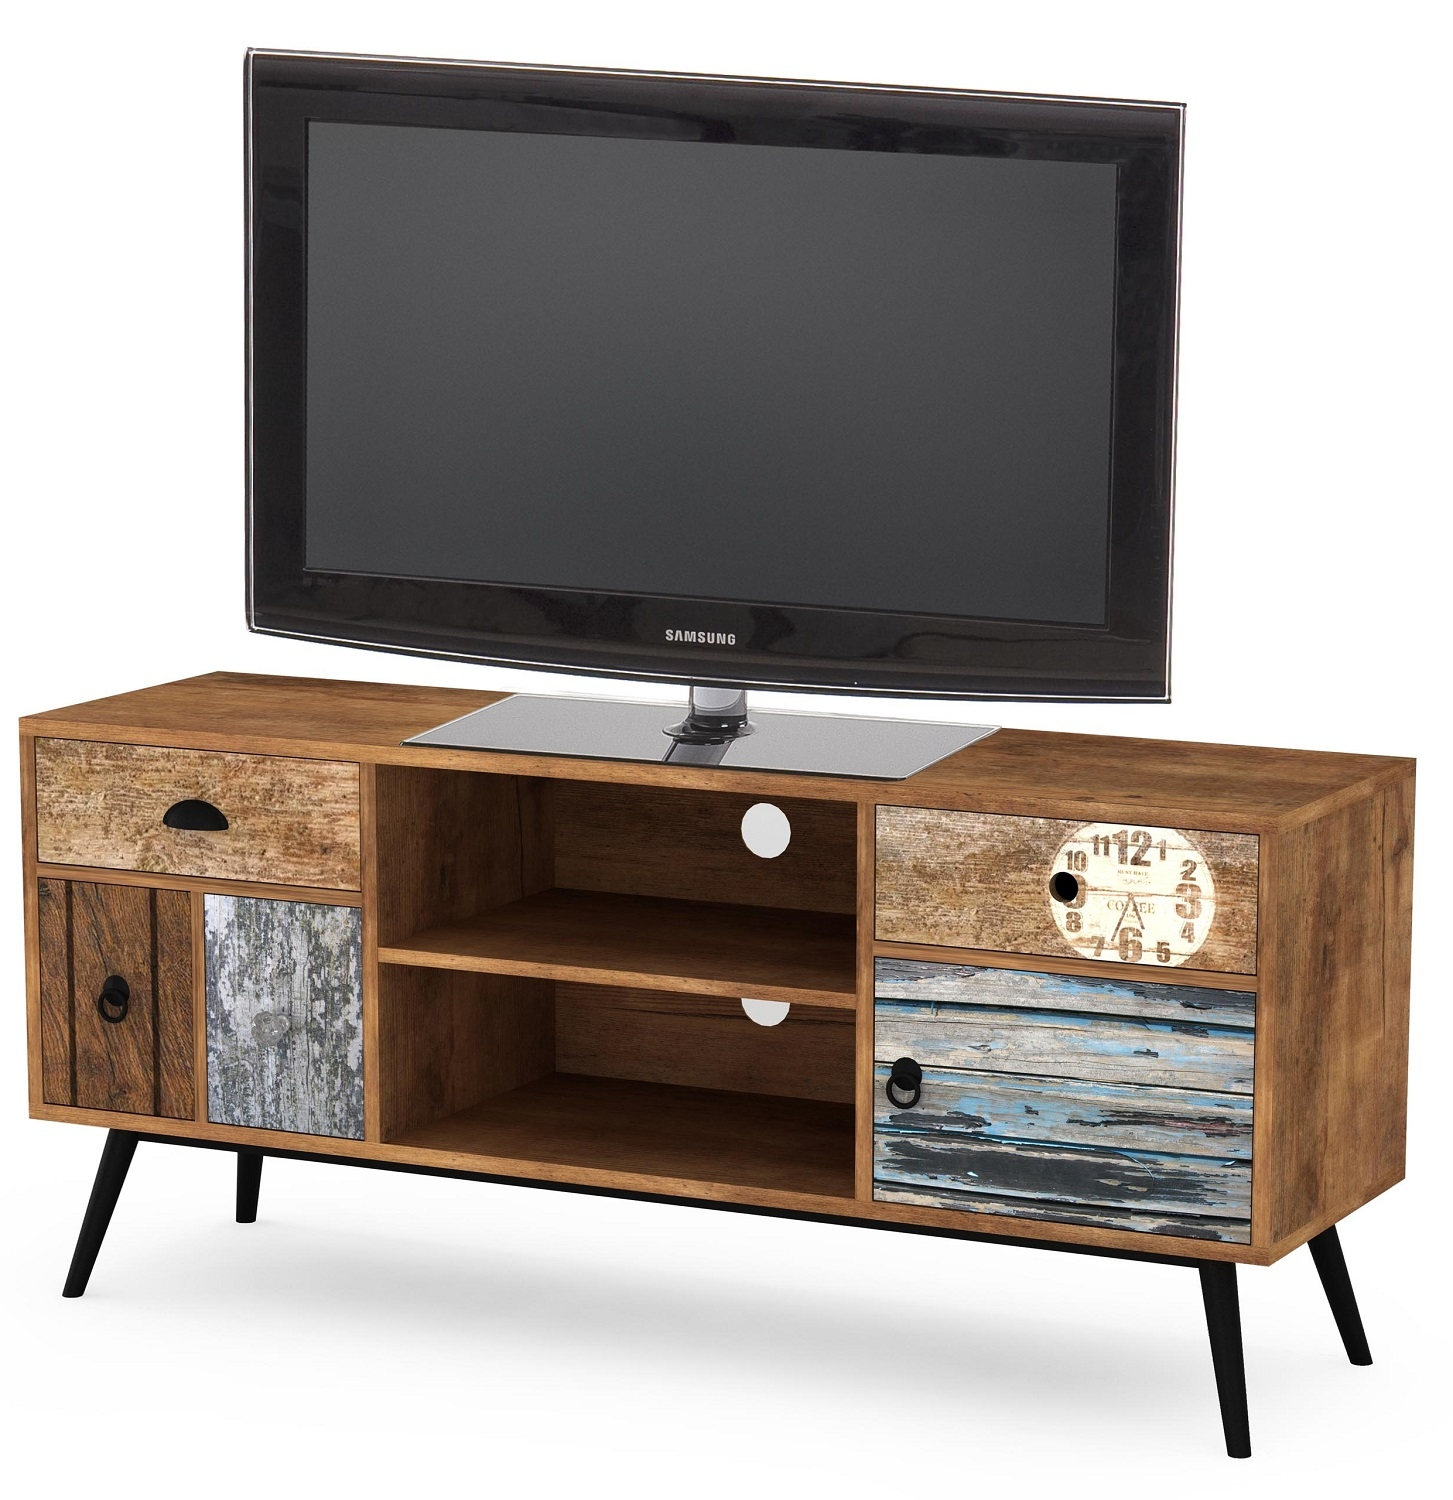 Tv-meubel Lima 120 cm breed in multicolor   Home Style